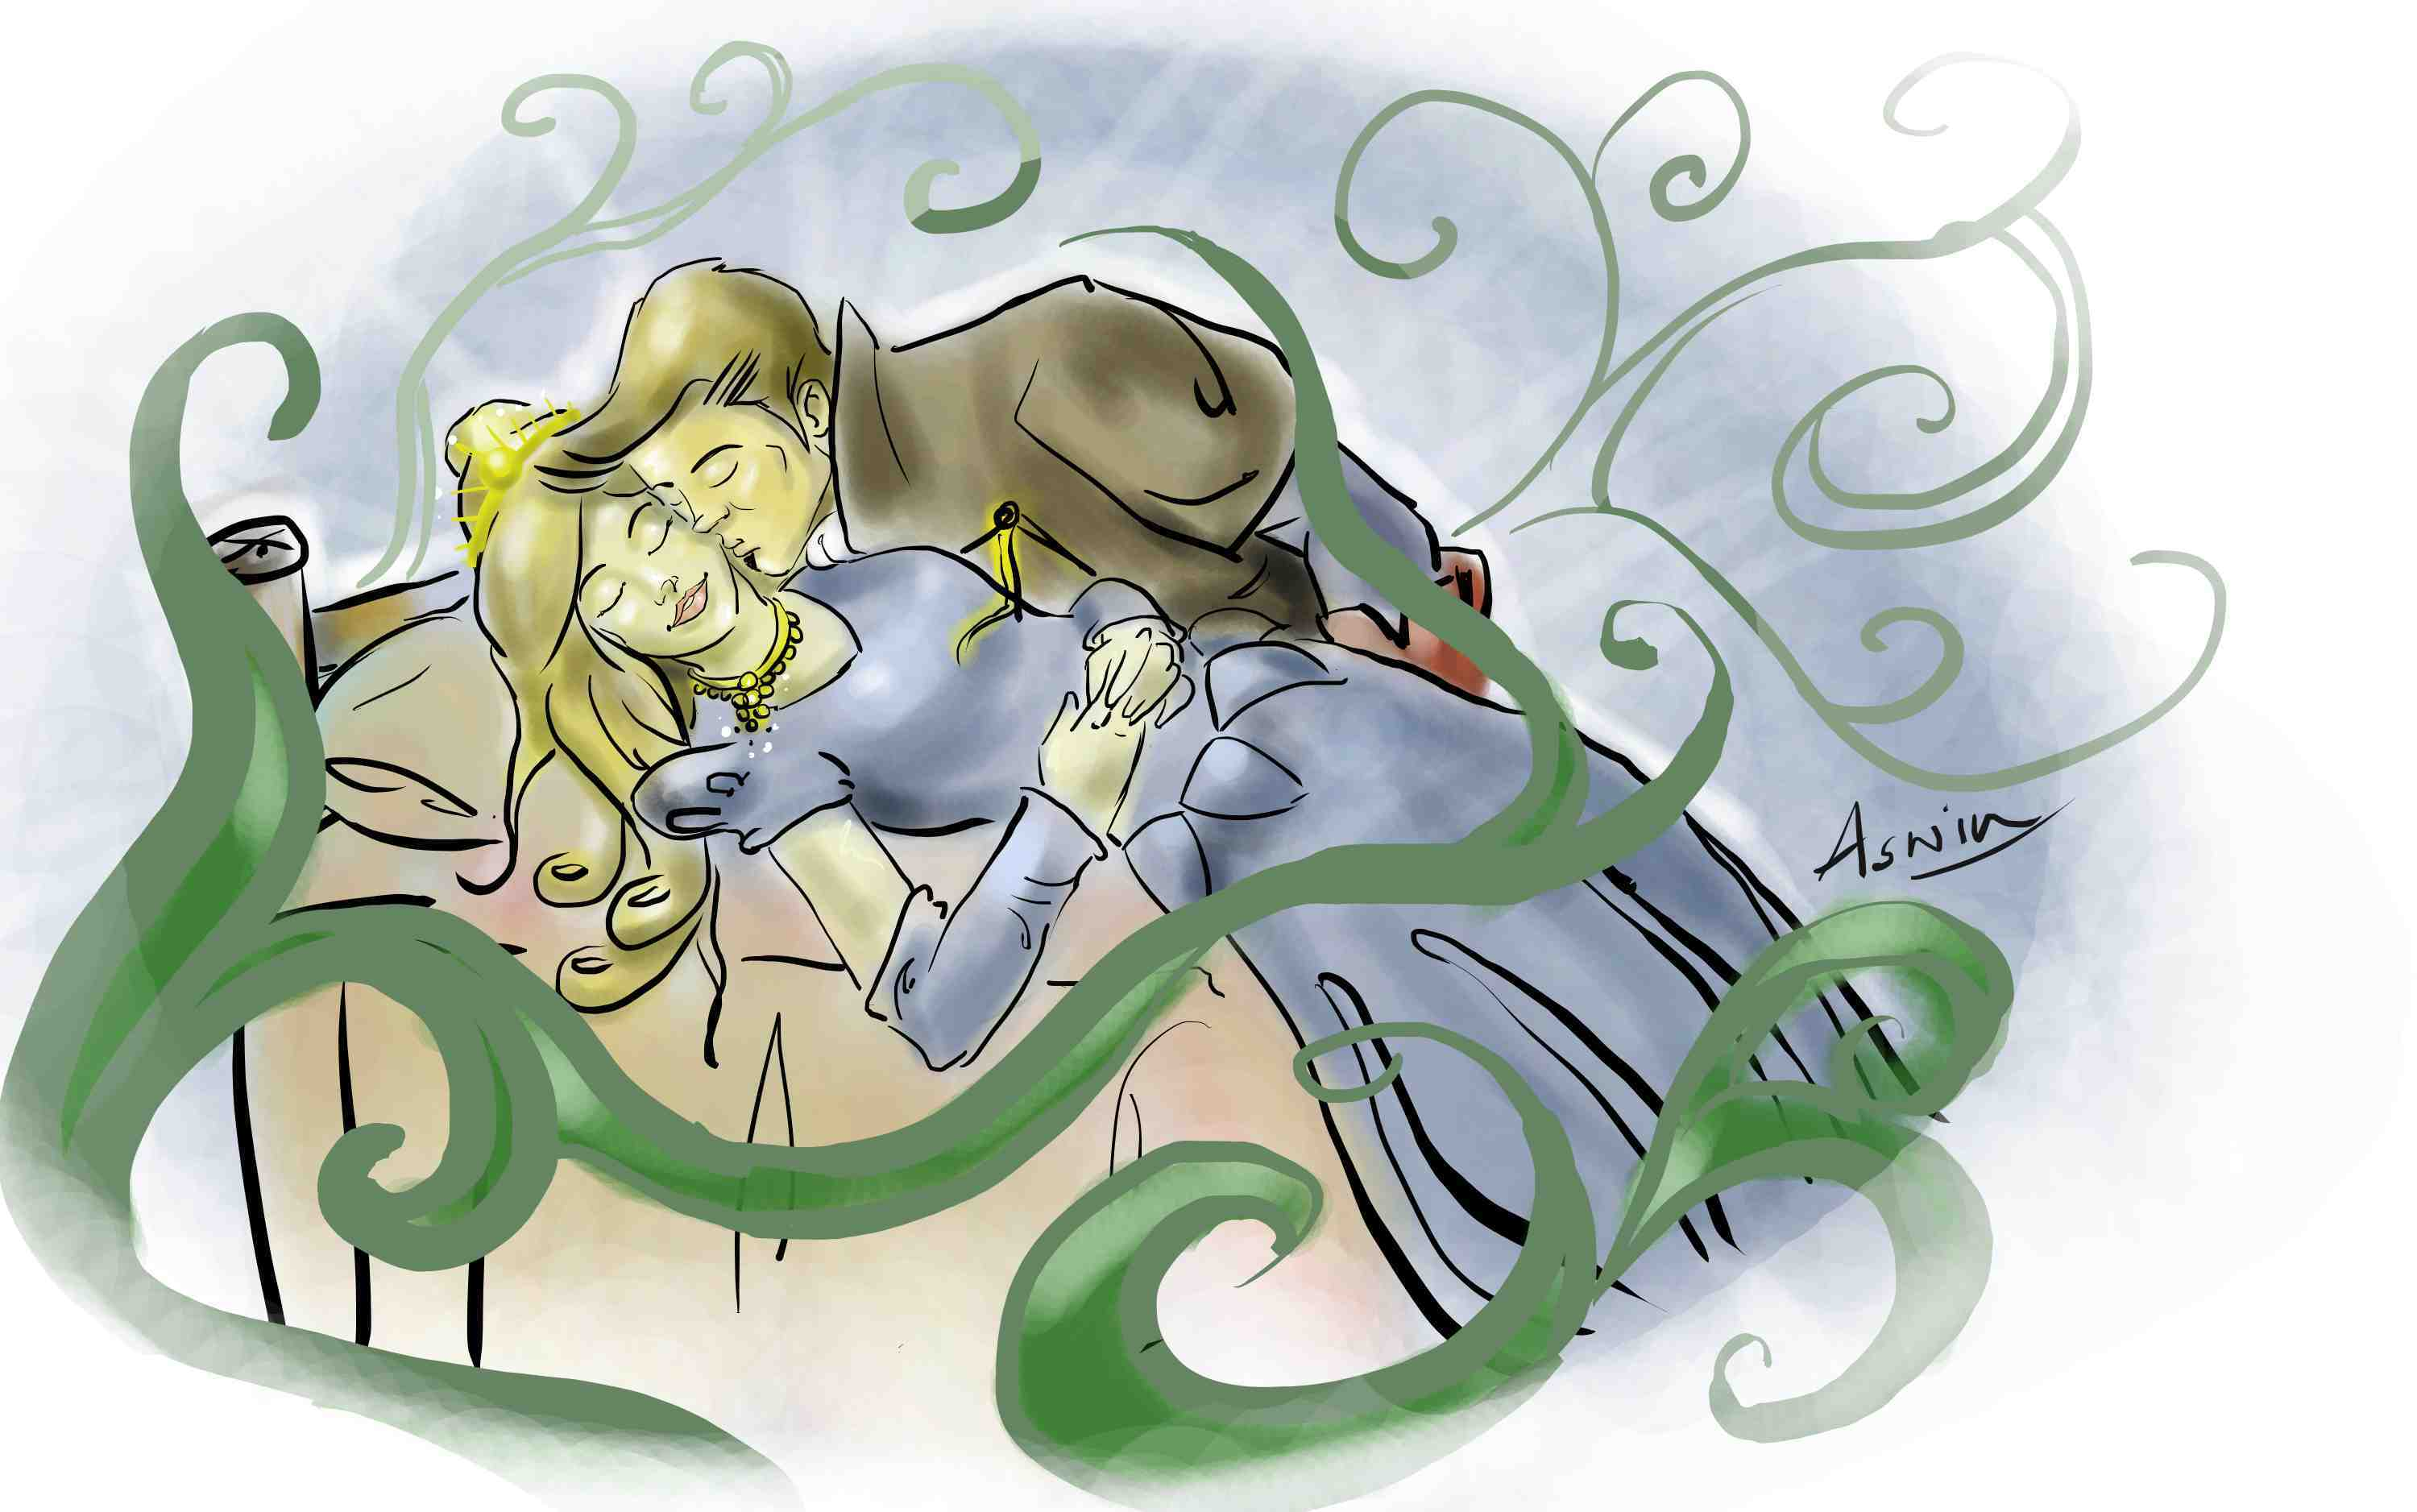 Handsome prince kissing Sleeping Beauty to wake her up.